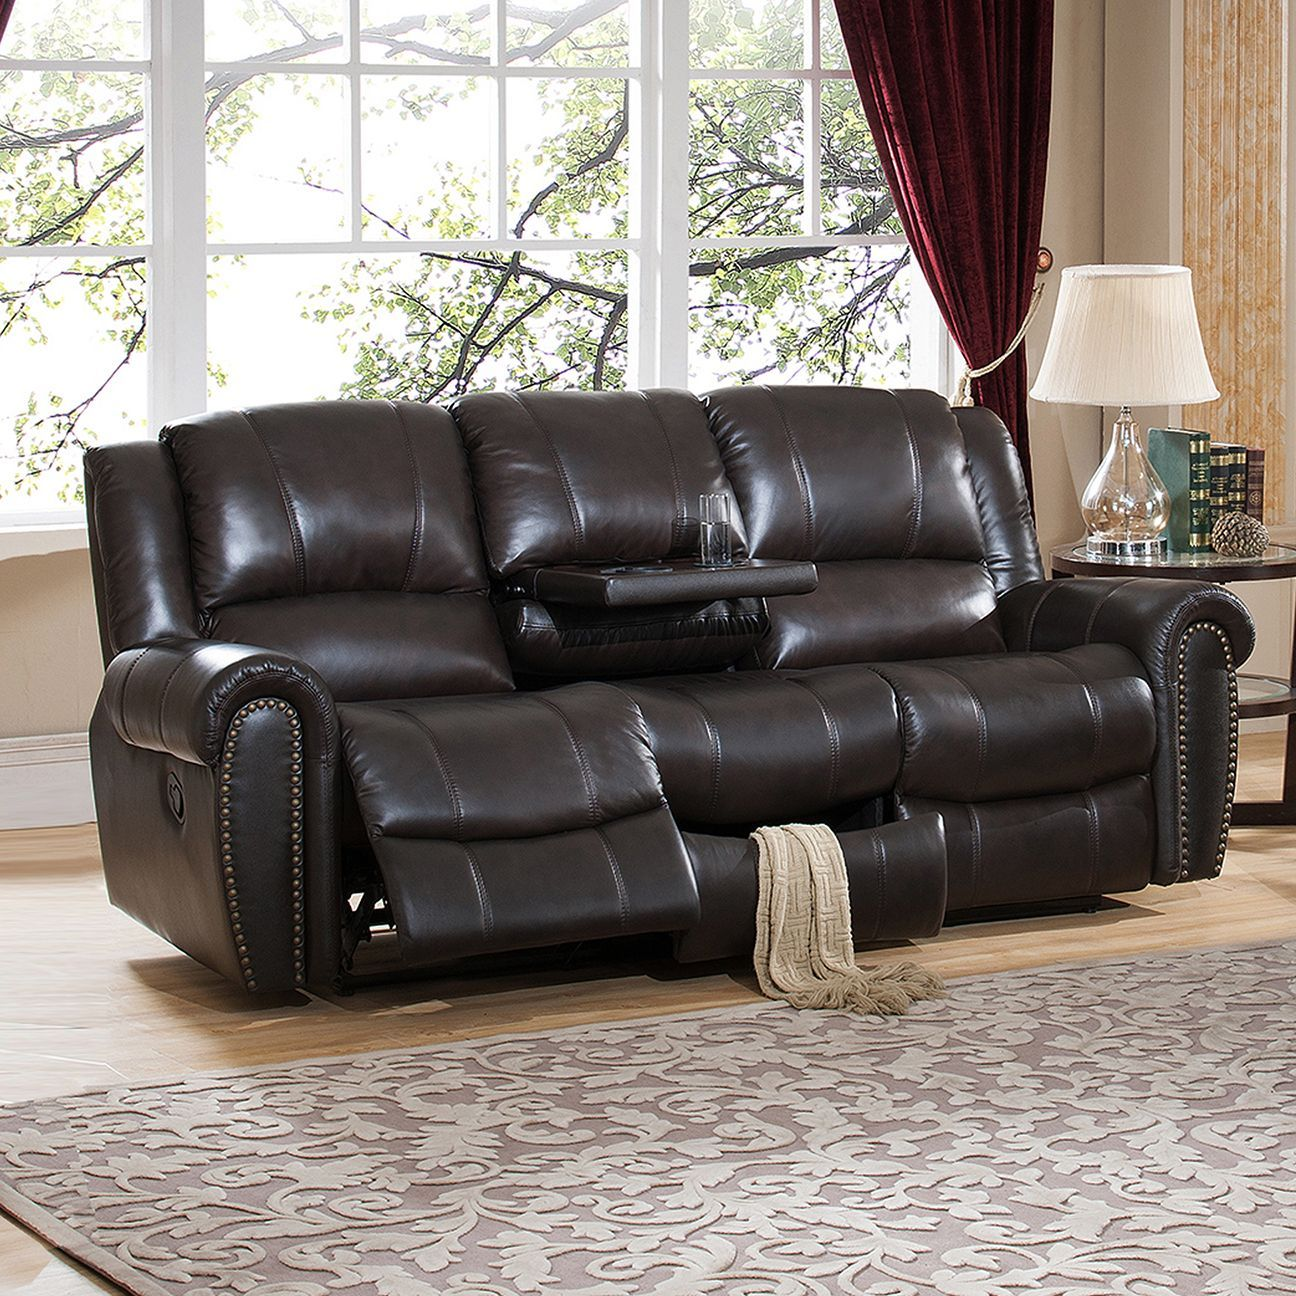 Amax Charlotte Top Grain Leather Reclining Sofa With Memory Foam Storage Drawer And Pull Out Tray Table S Brown